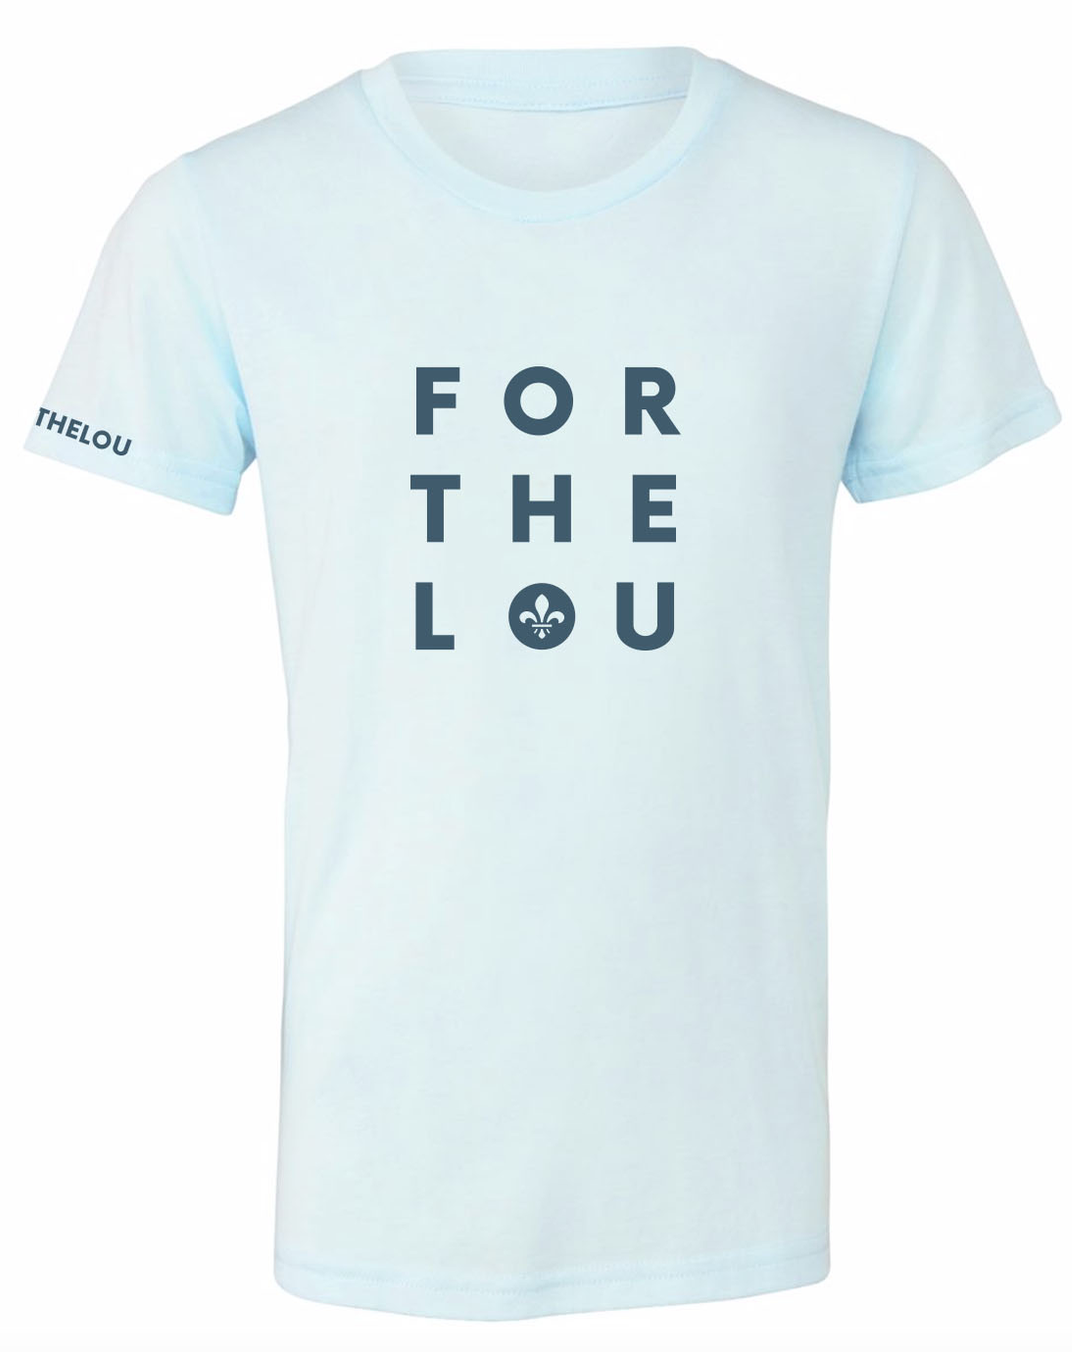 Forthelou - T-shirt - Youth Large